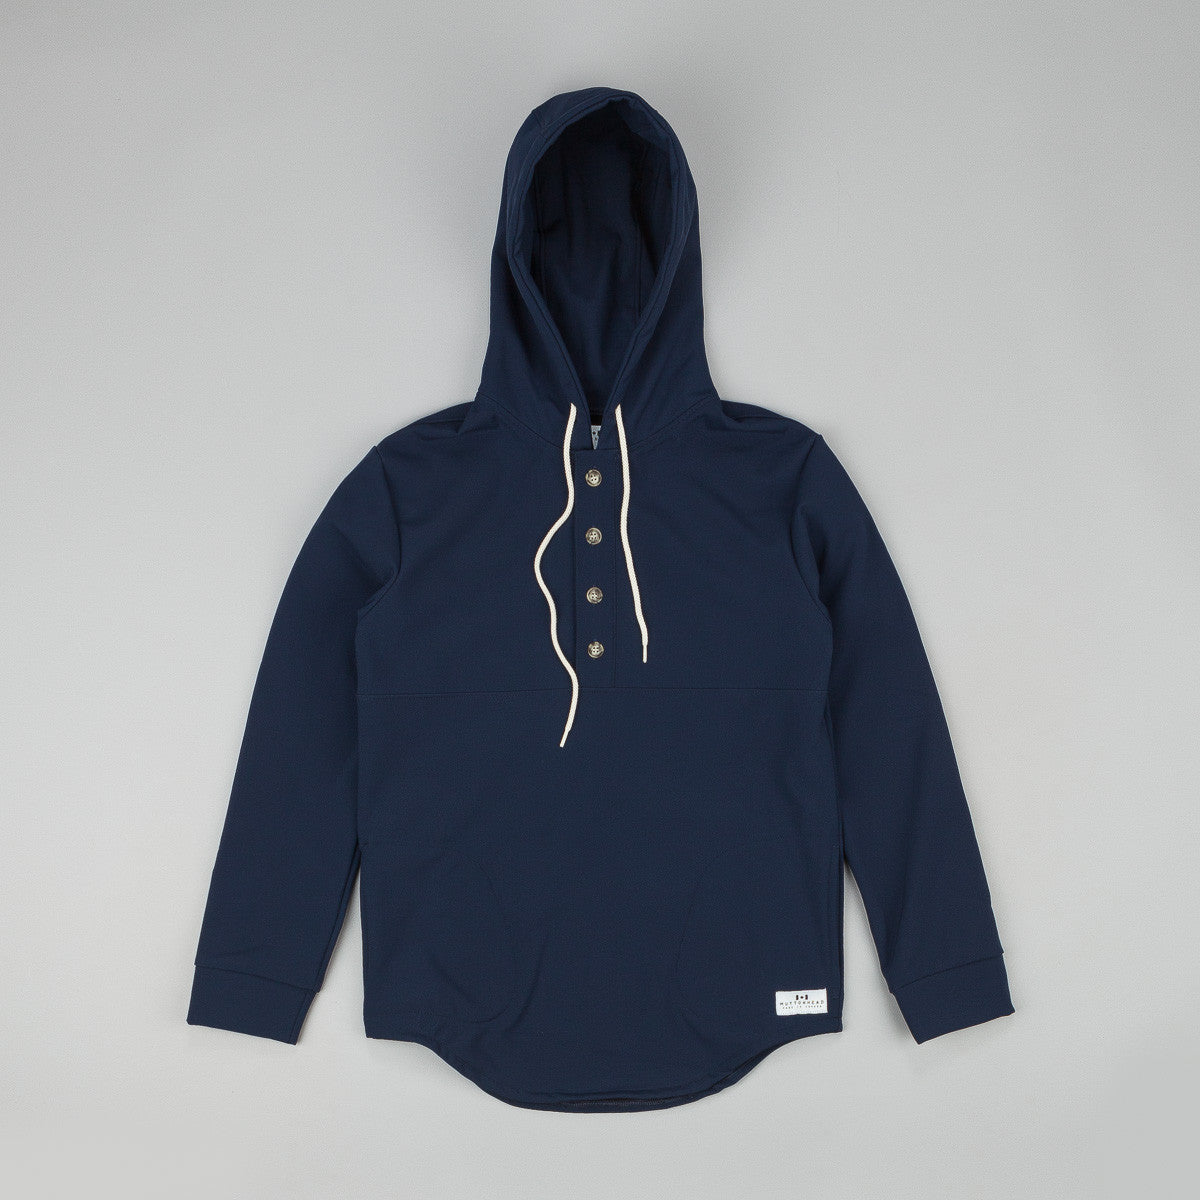 Muttonhead Waterproof Rain Hooded Camping Sweatshirt - Navy Softshell